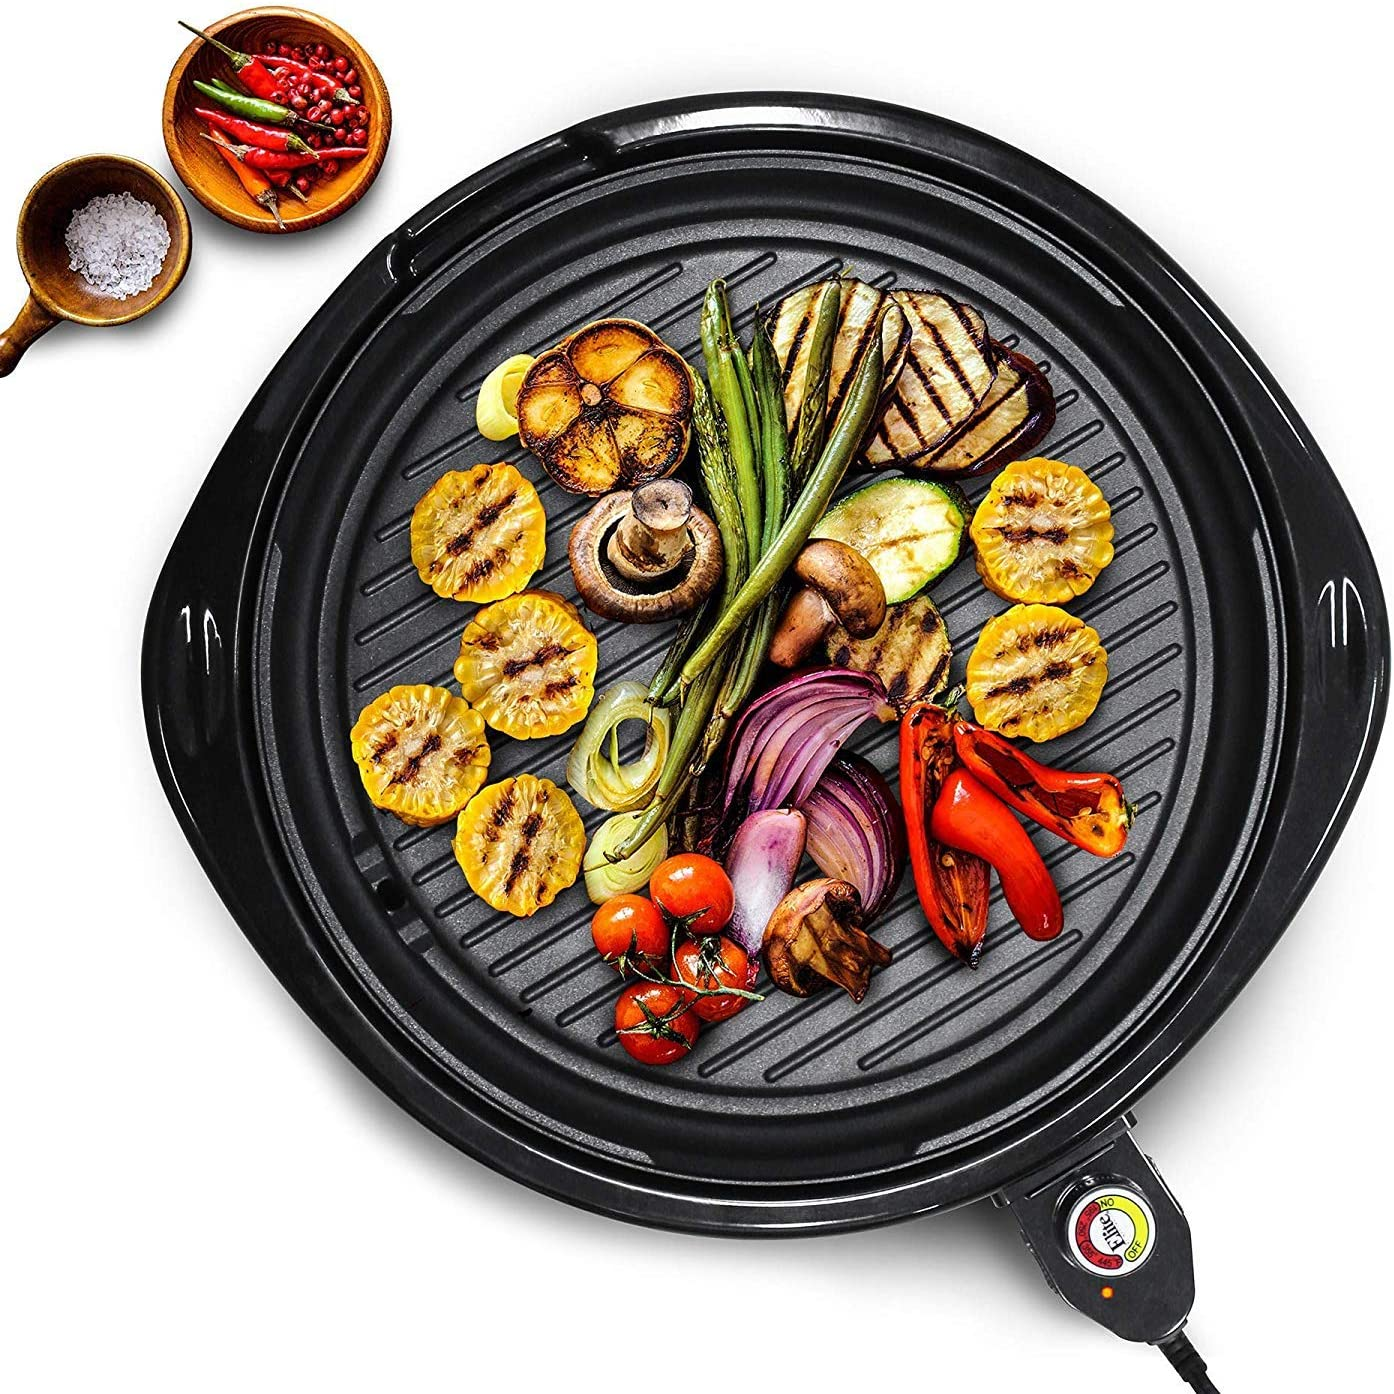 Maxi-Matic Indoor Electric Nonstick Grill Adjustable Thermostat